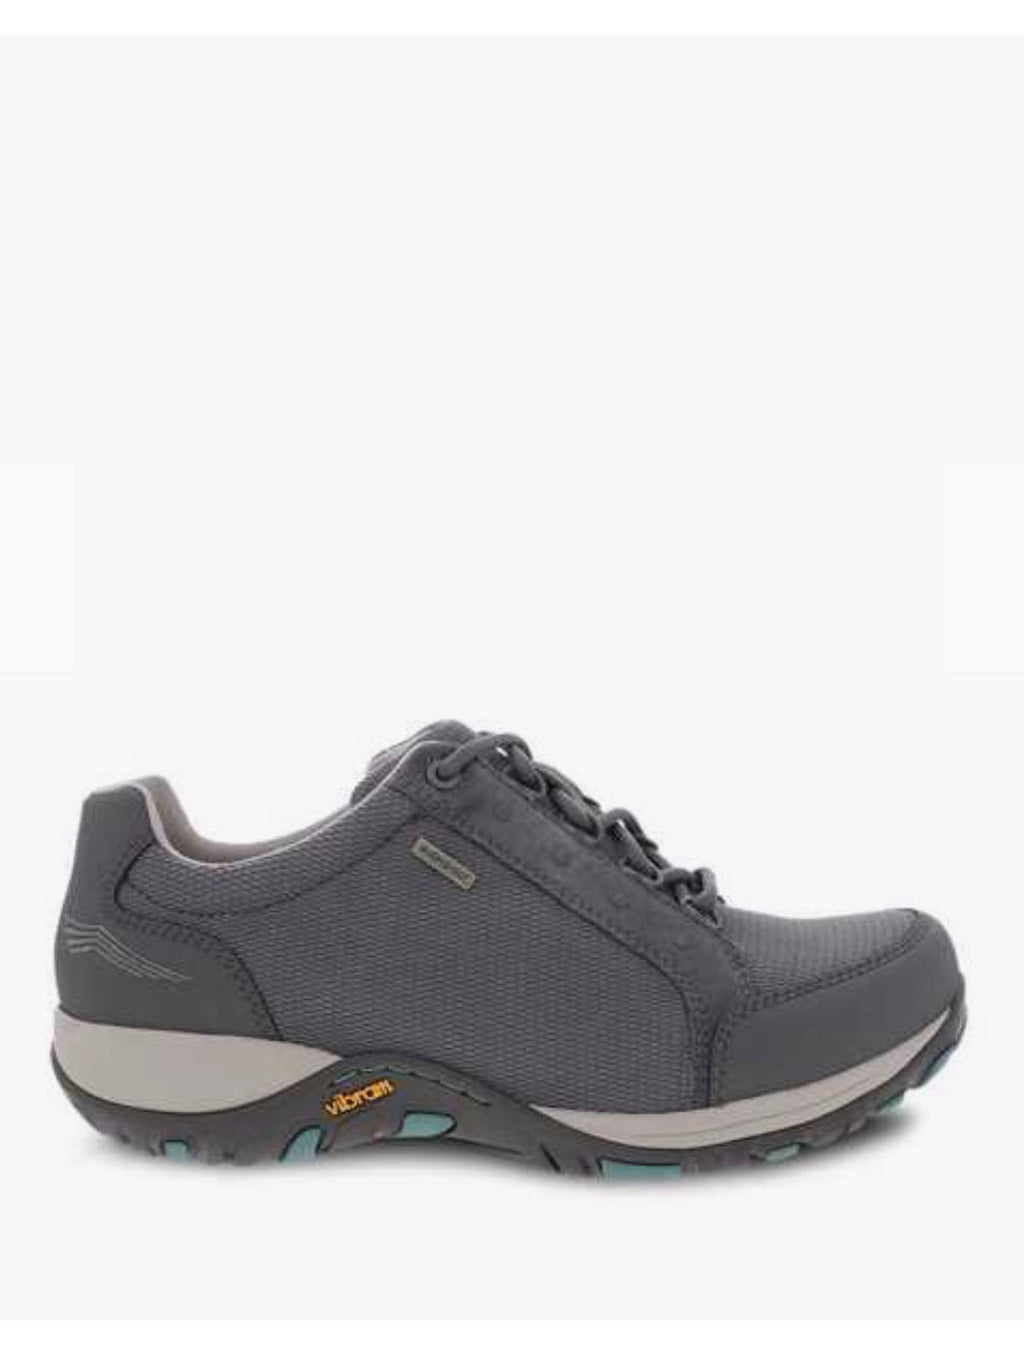 Dansko Peggy Sneaker in Grey